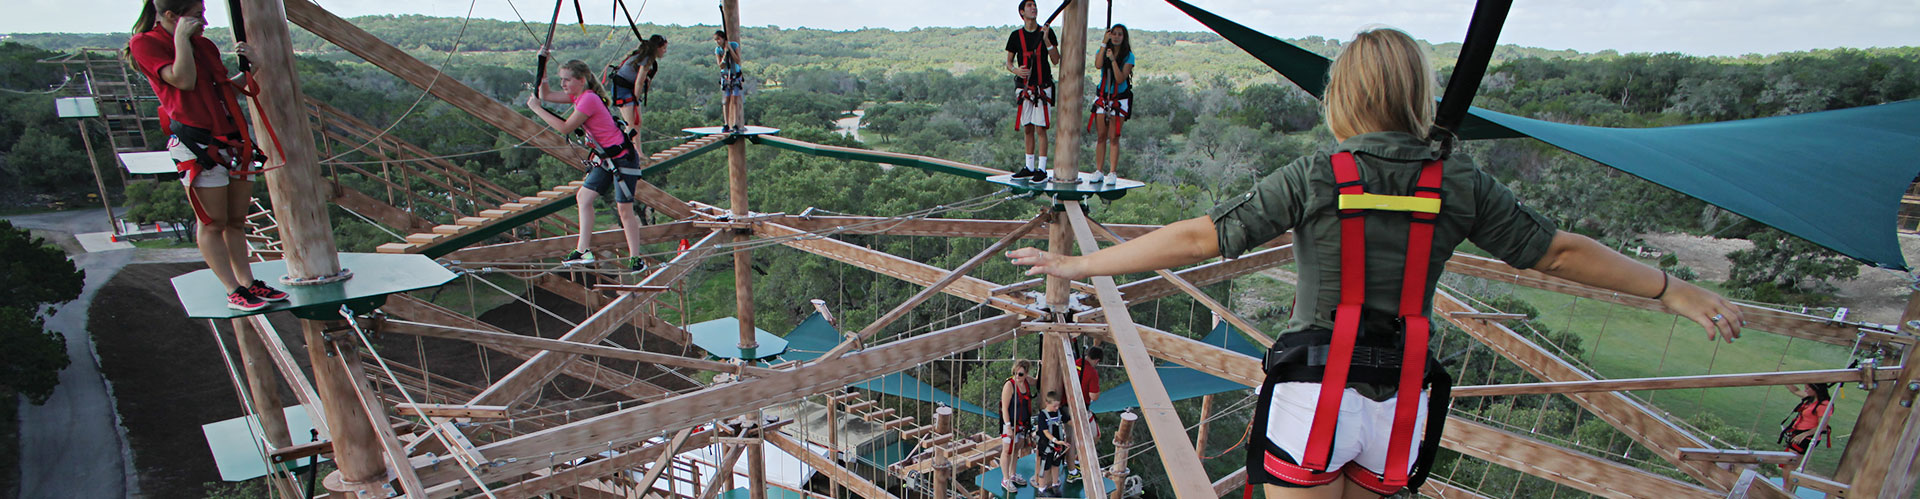 Ropes Course high above ground